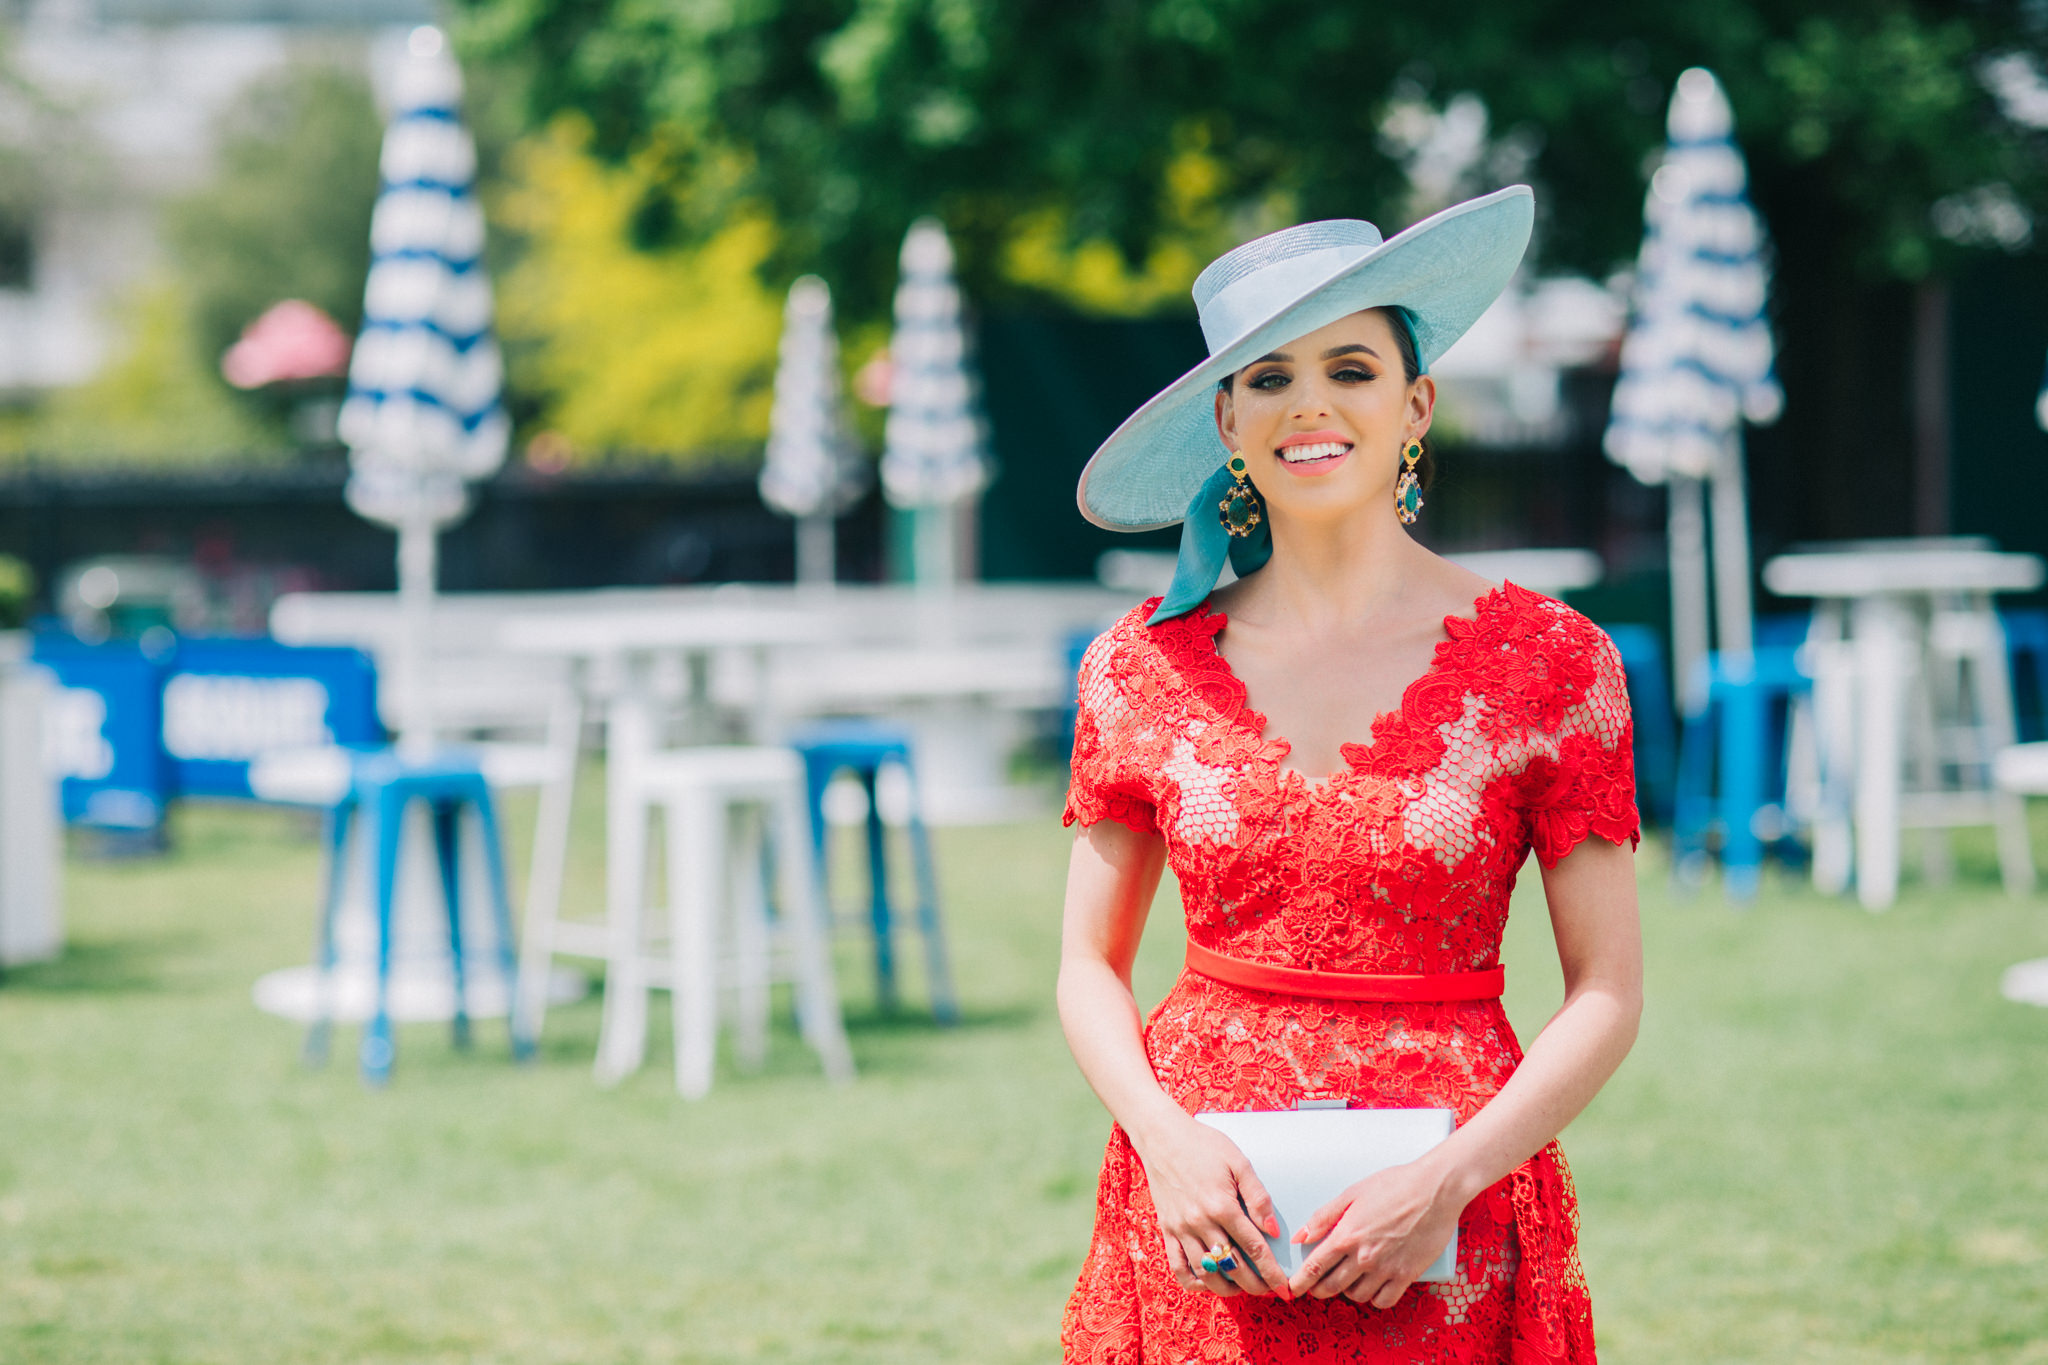 expensive fashions on the field outfits 2017 - what to wear to the races